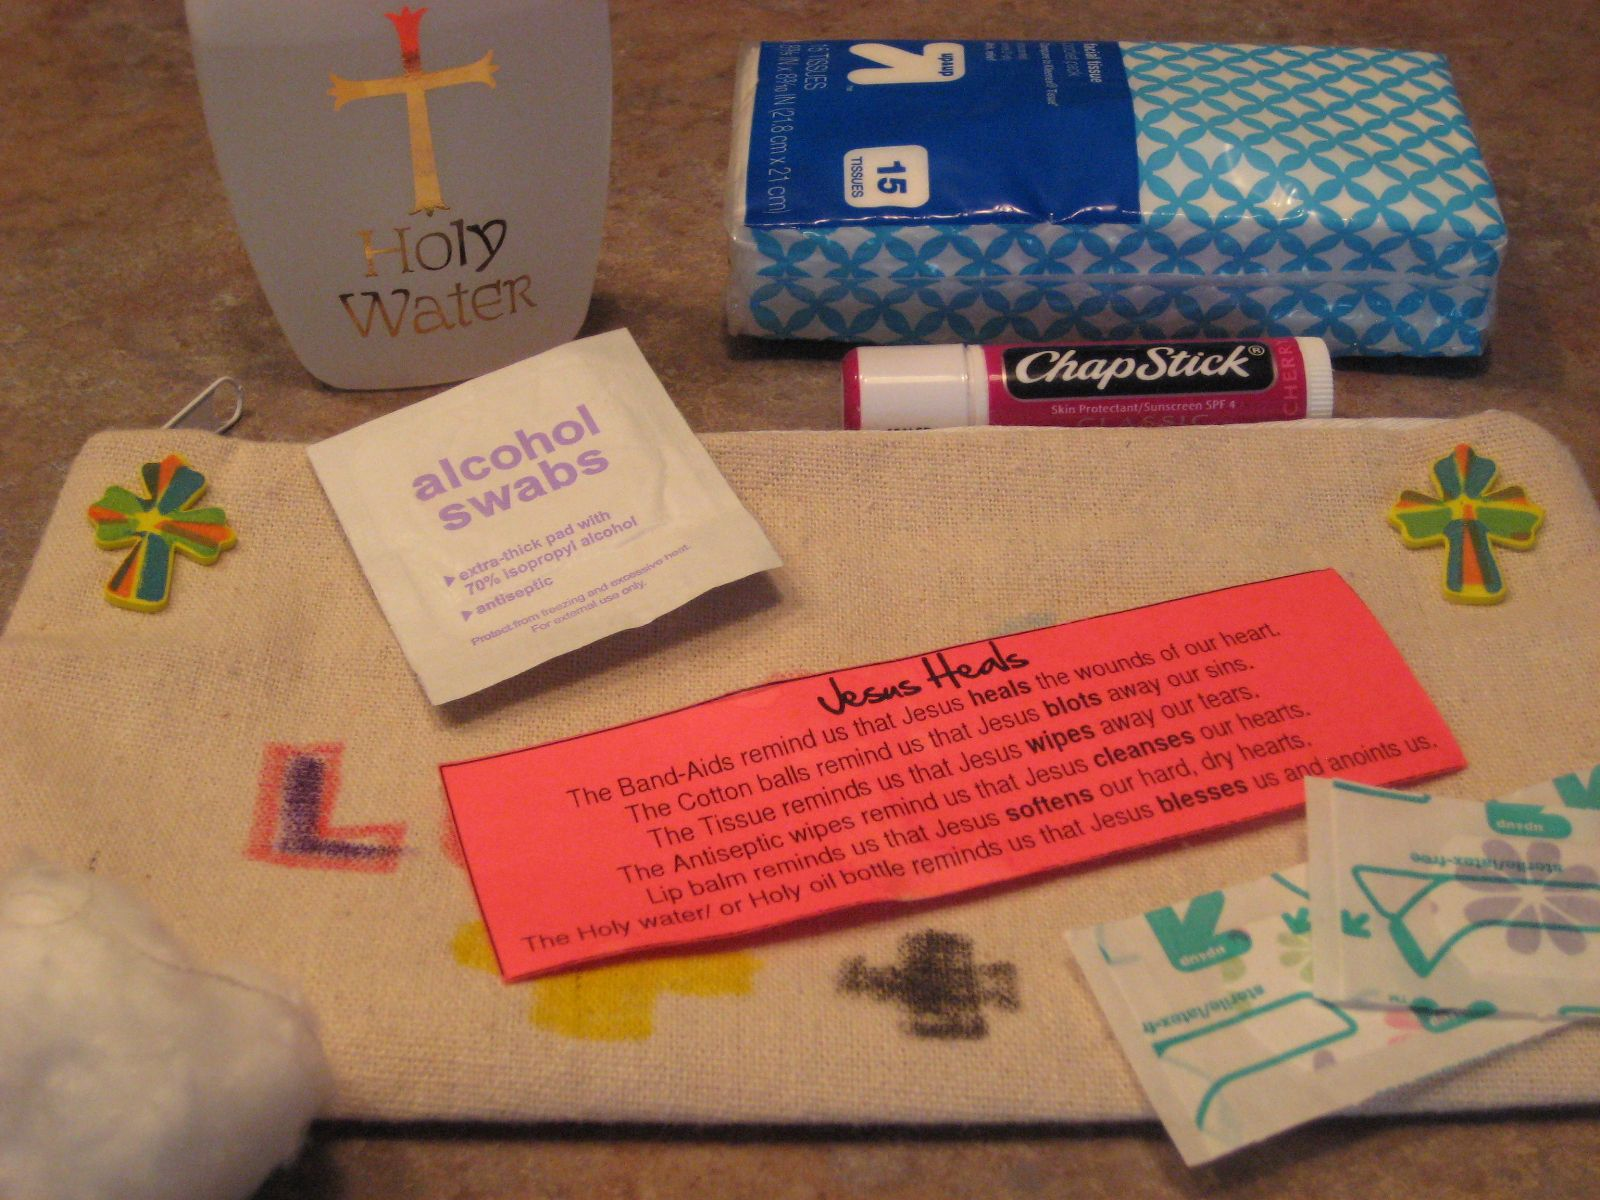 Sacrament Of Reconciliation Craft Projects